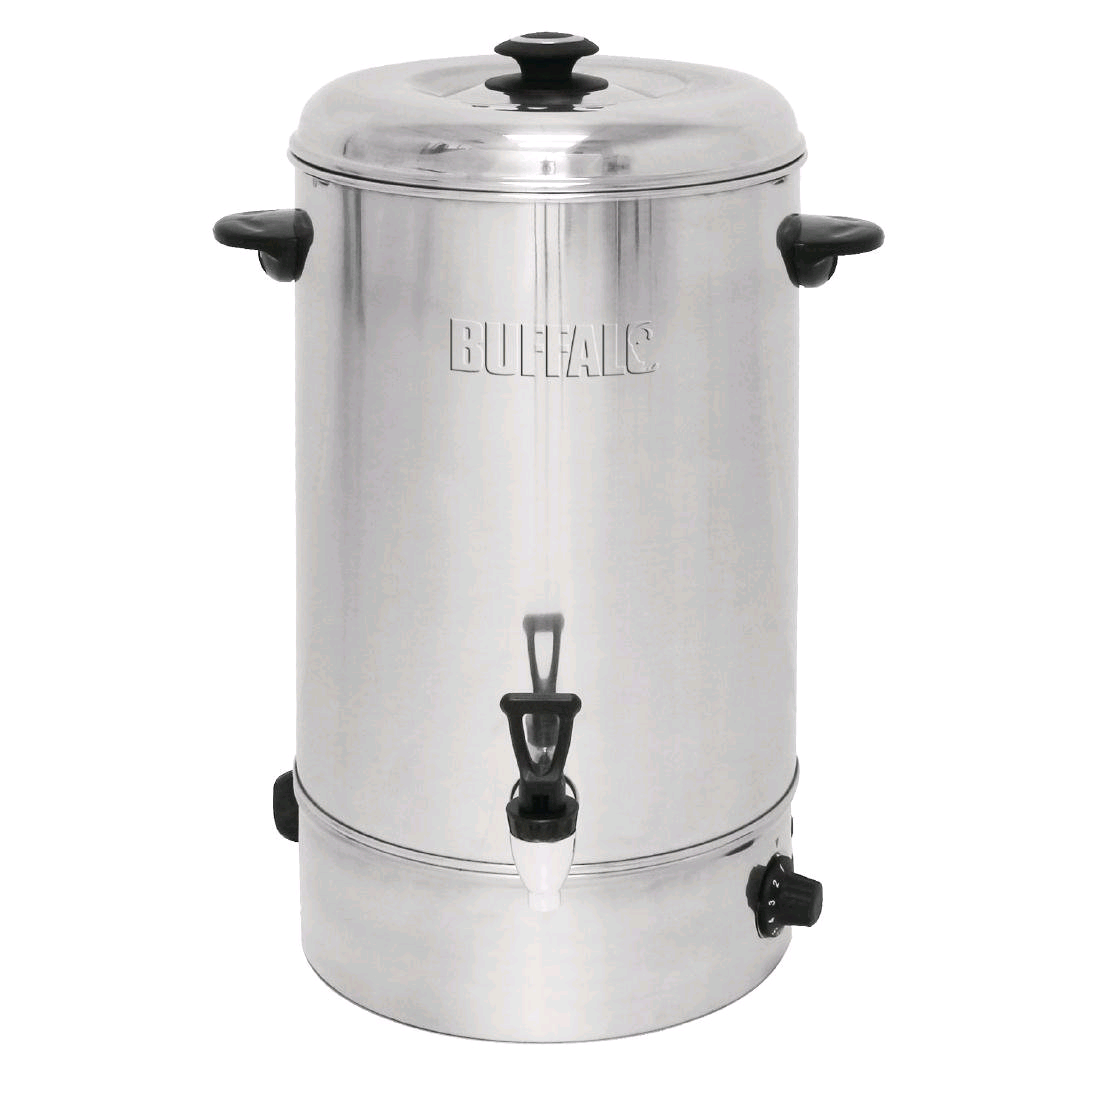 Buffalo GL347 Manual Fill Water Boiler 20Ltr Stainless Steel Catering Urn